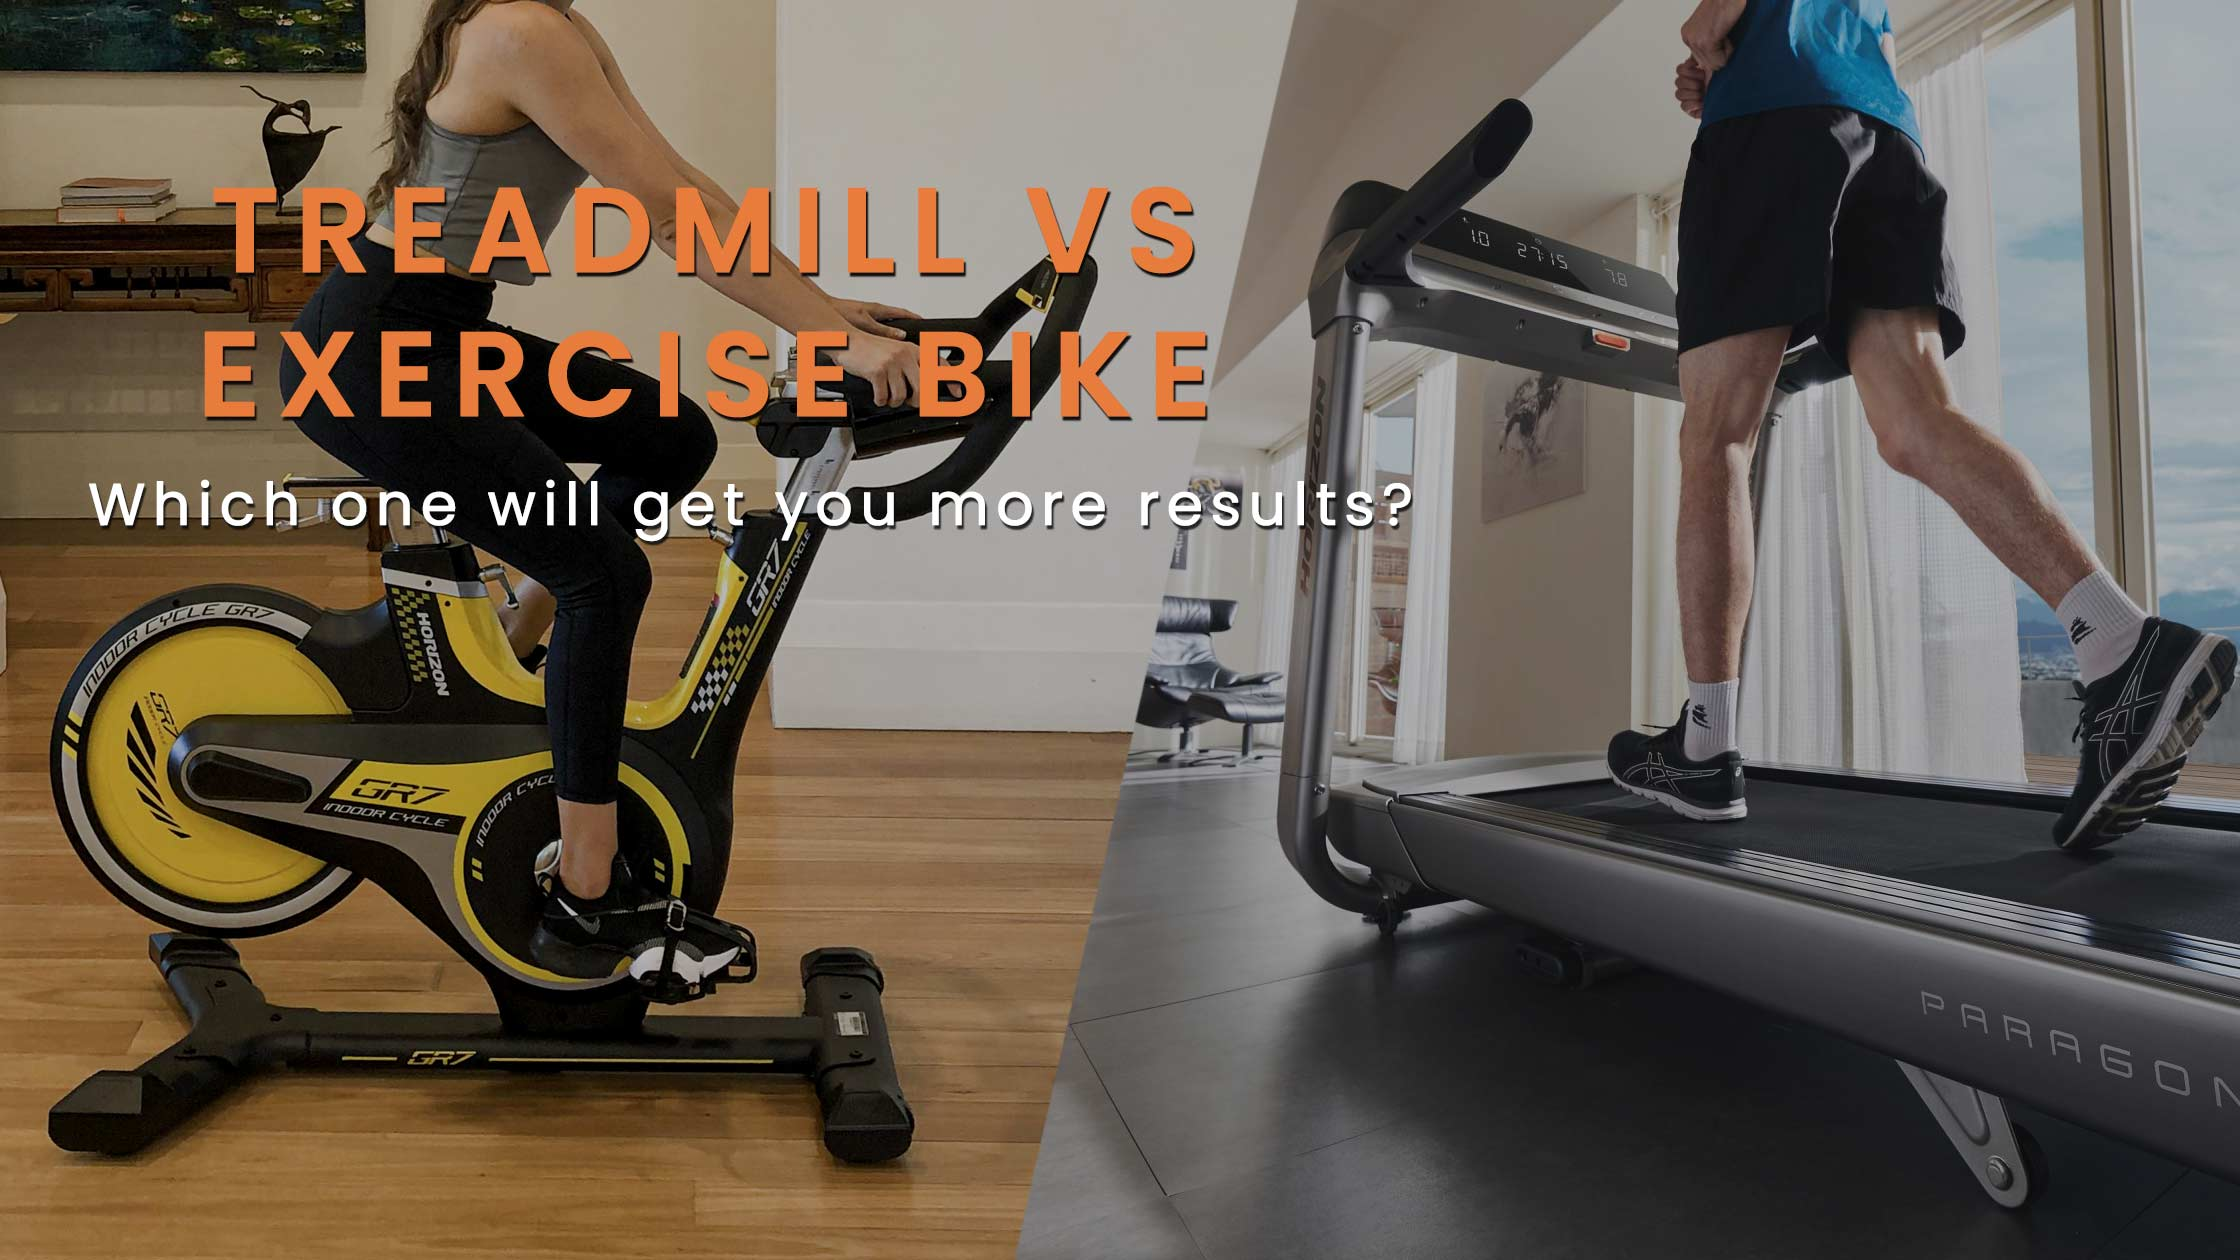 Treadmill vs Exercise Bike - Which one will get you more results?